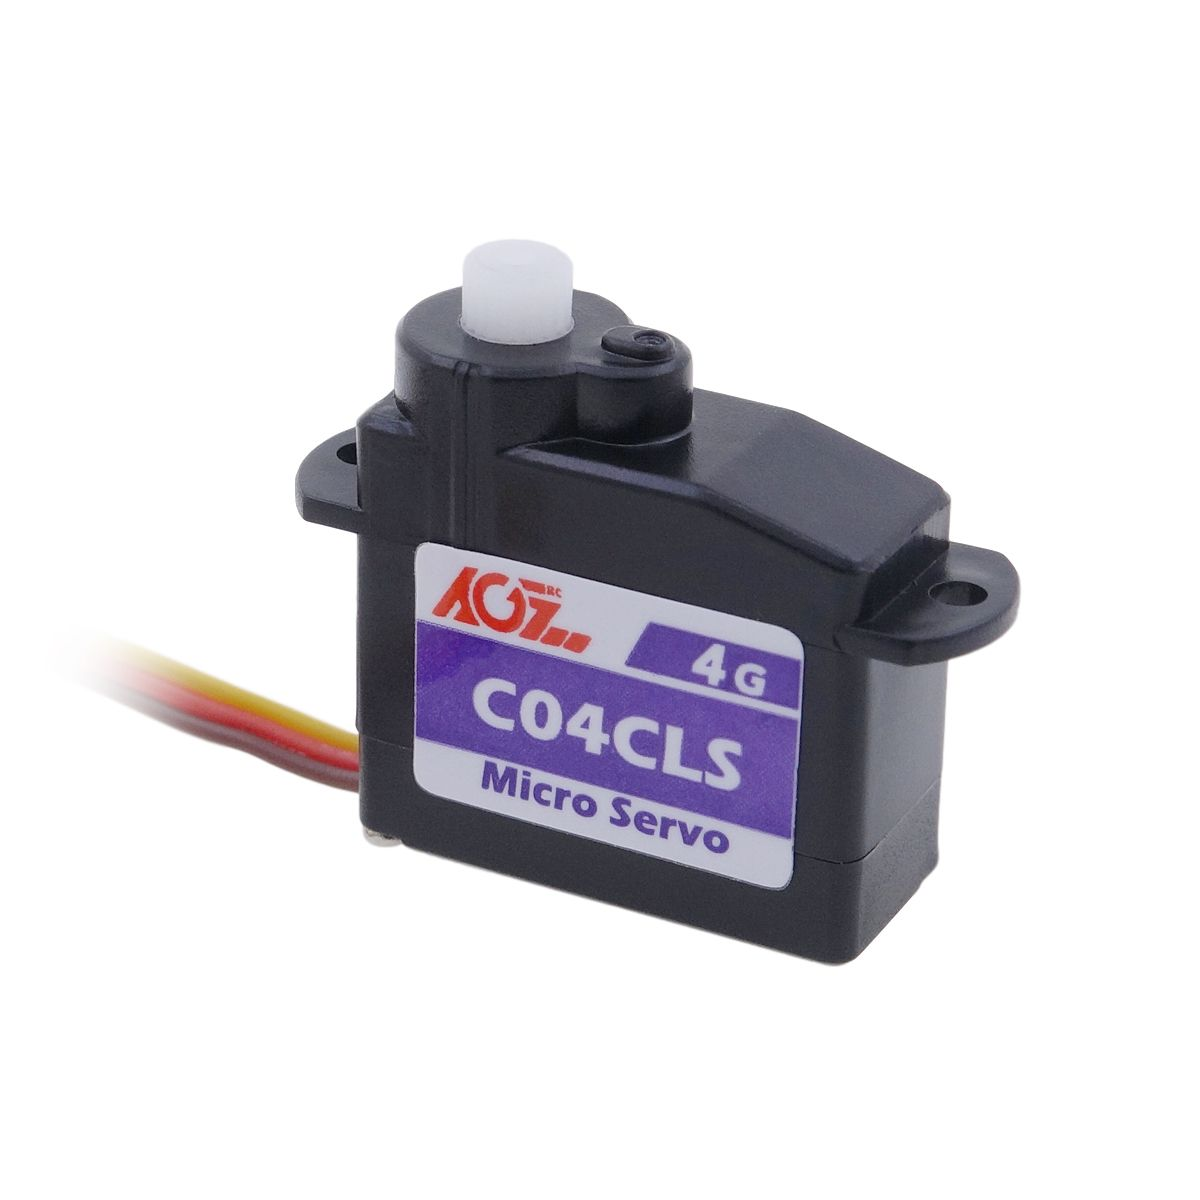 C04CLS 6V 0.07S Superb Speed Nano Micro Coreless Electronic Servo for for 1:35 Scaler